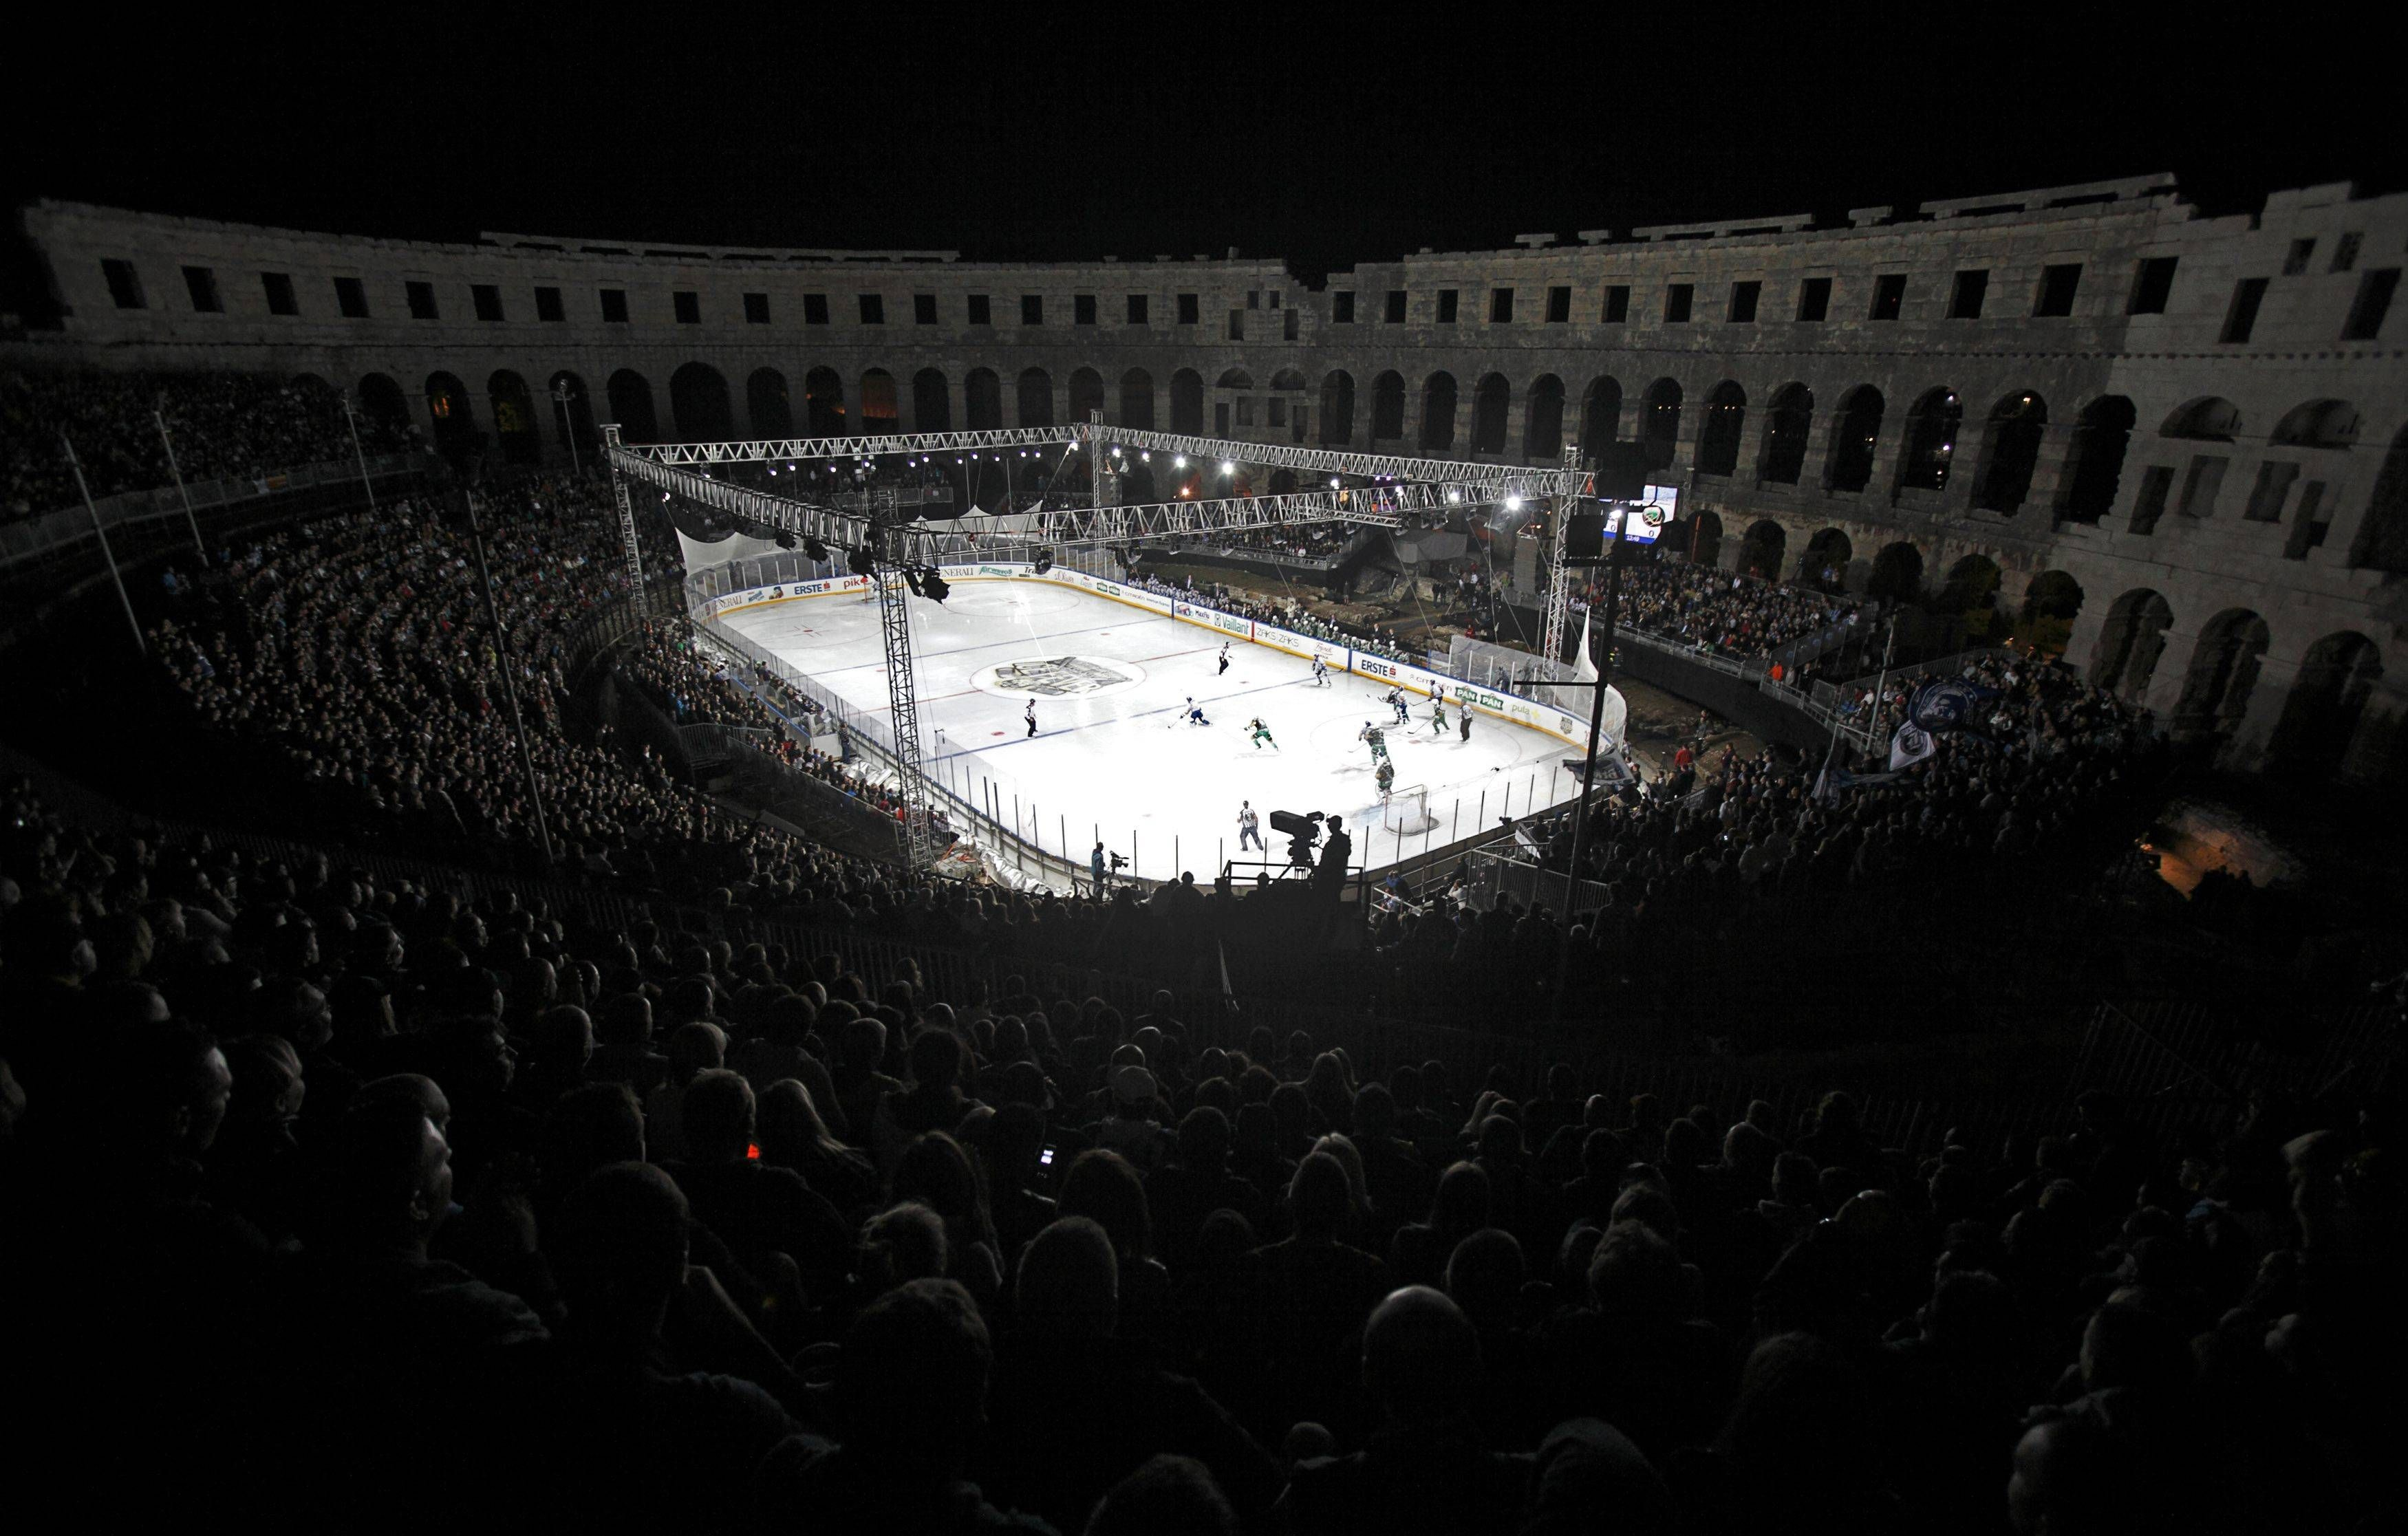 How about this outdoor hockey rink in Croatia?